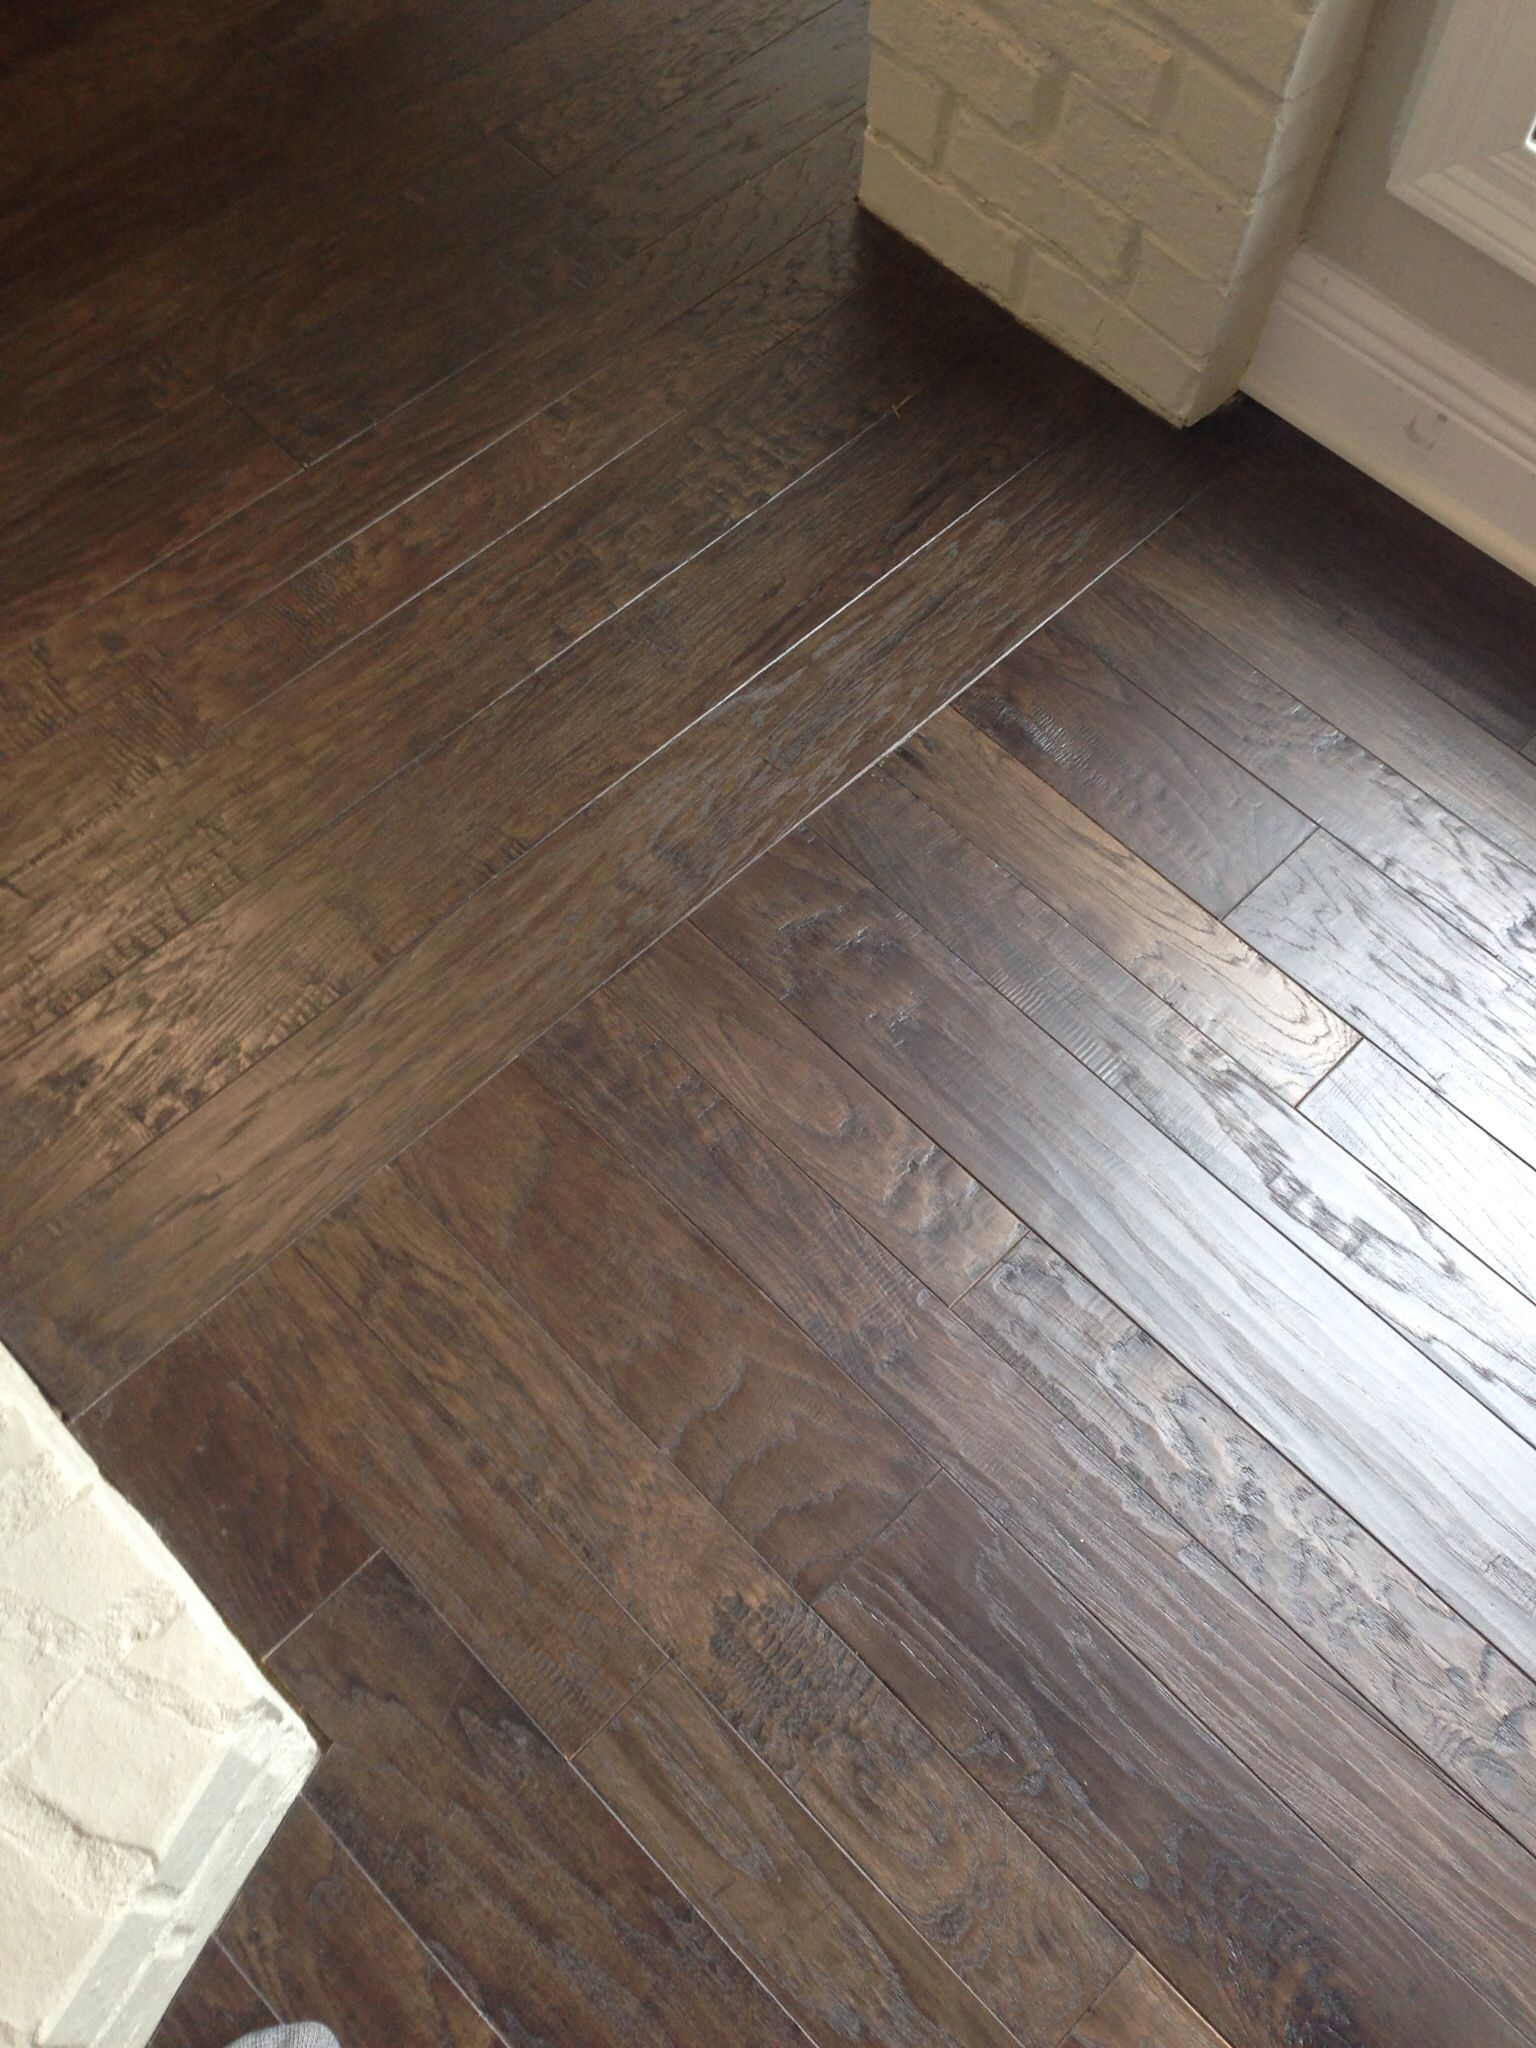 Hardwood Floors Borders Between Rooms | ... floor runs the other ...